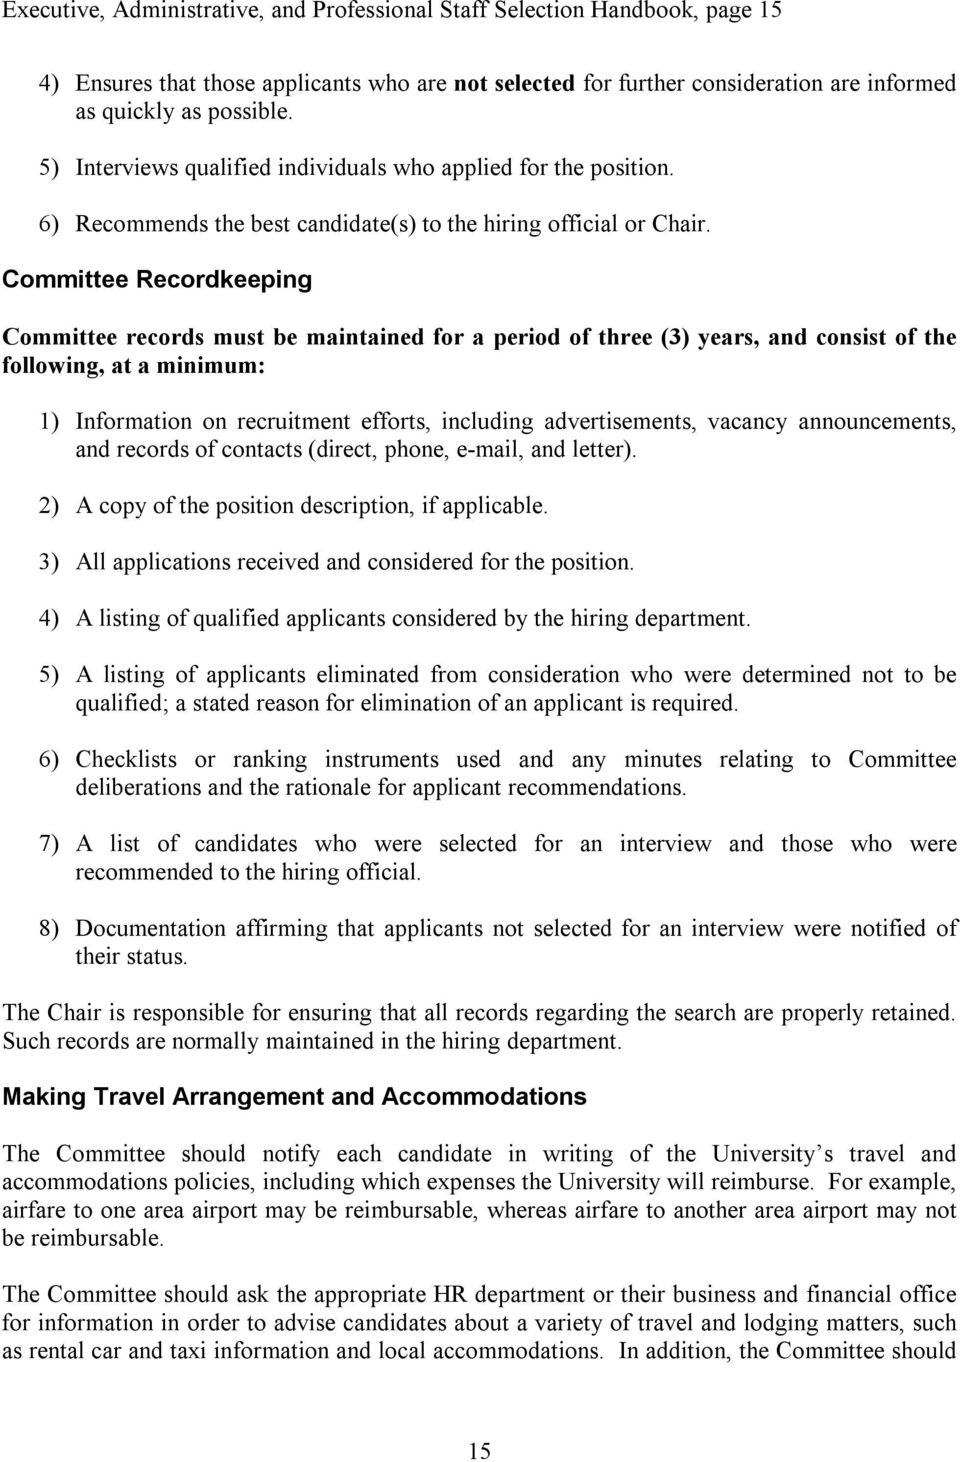 Committee Recordkeeping Committee records must be maintained for a period of three (3) years, and consist of the following, at a minimum: 1) Information on recruitment efforts, including